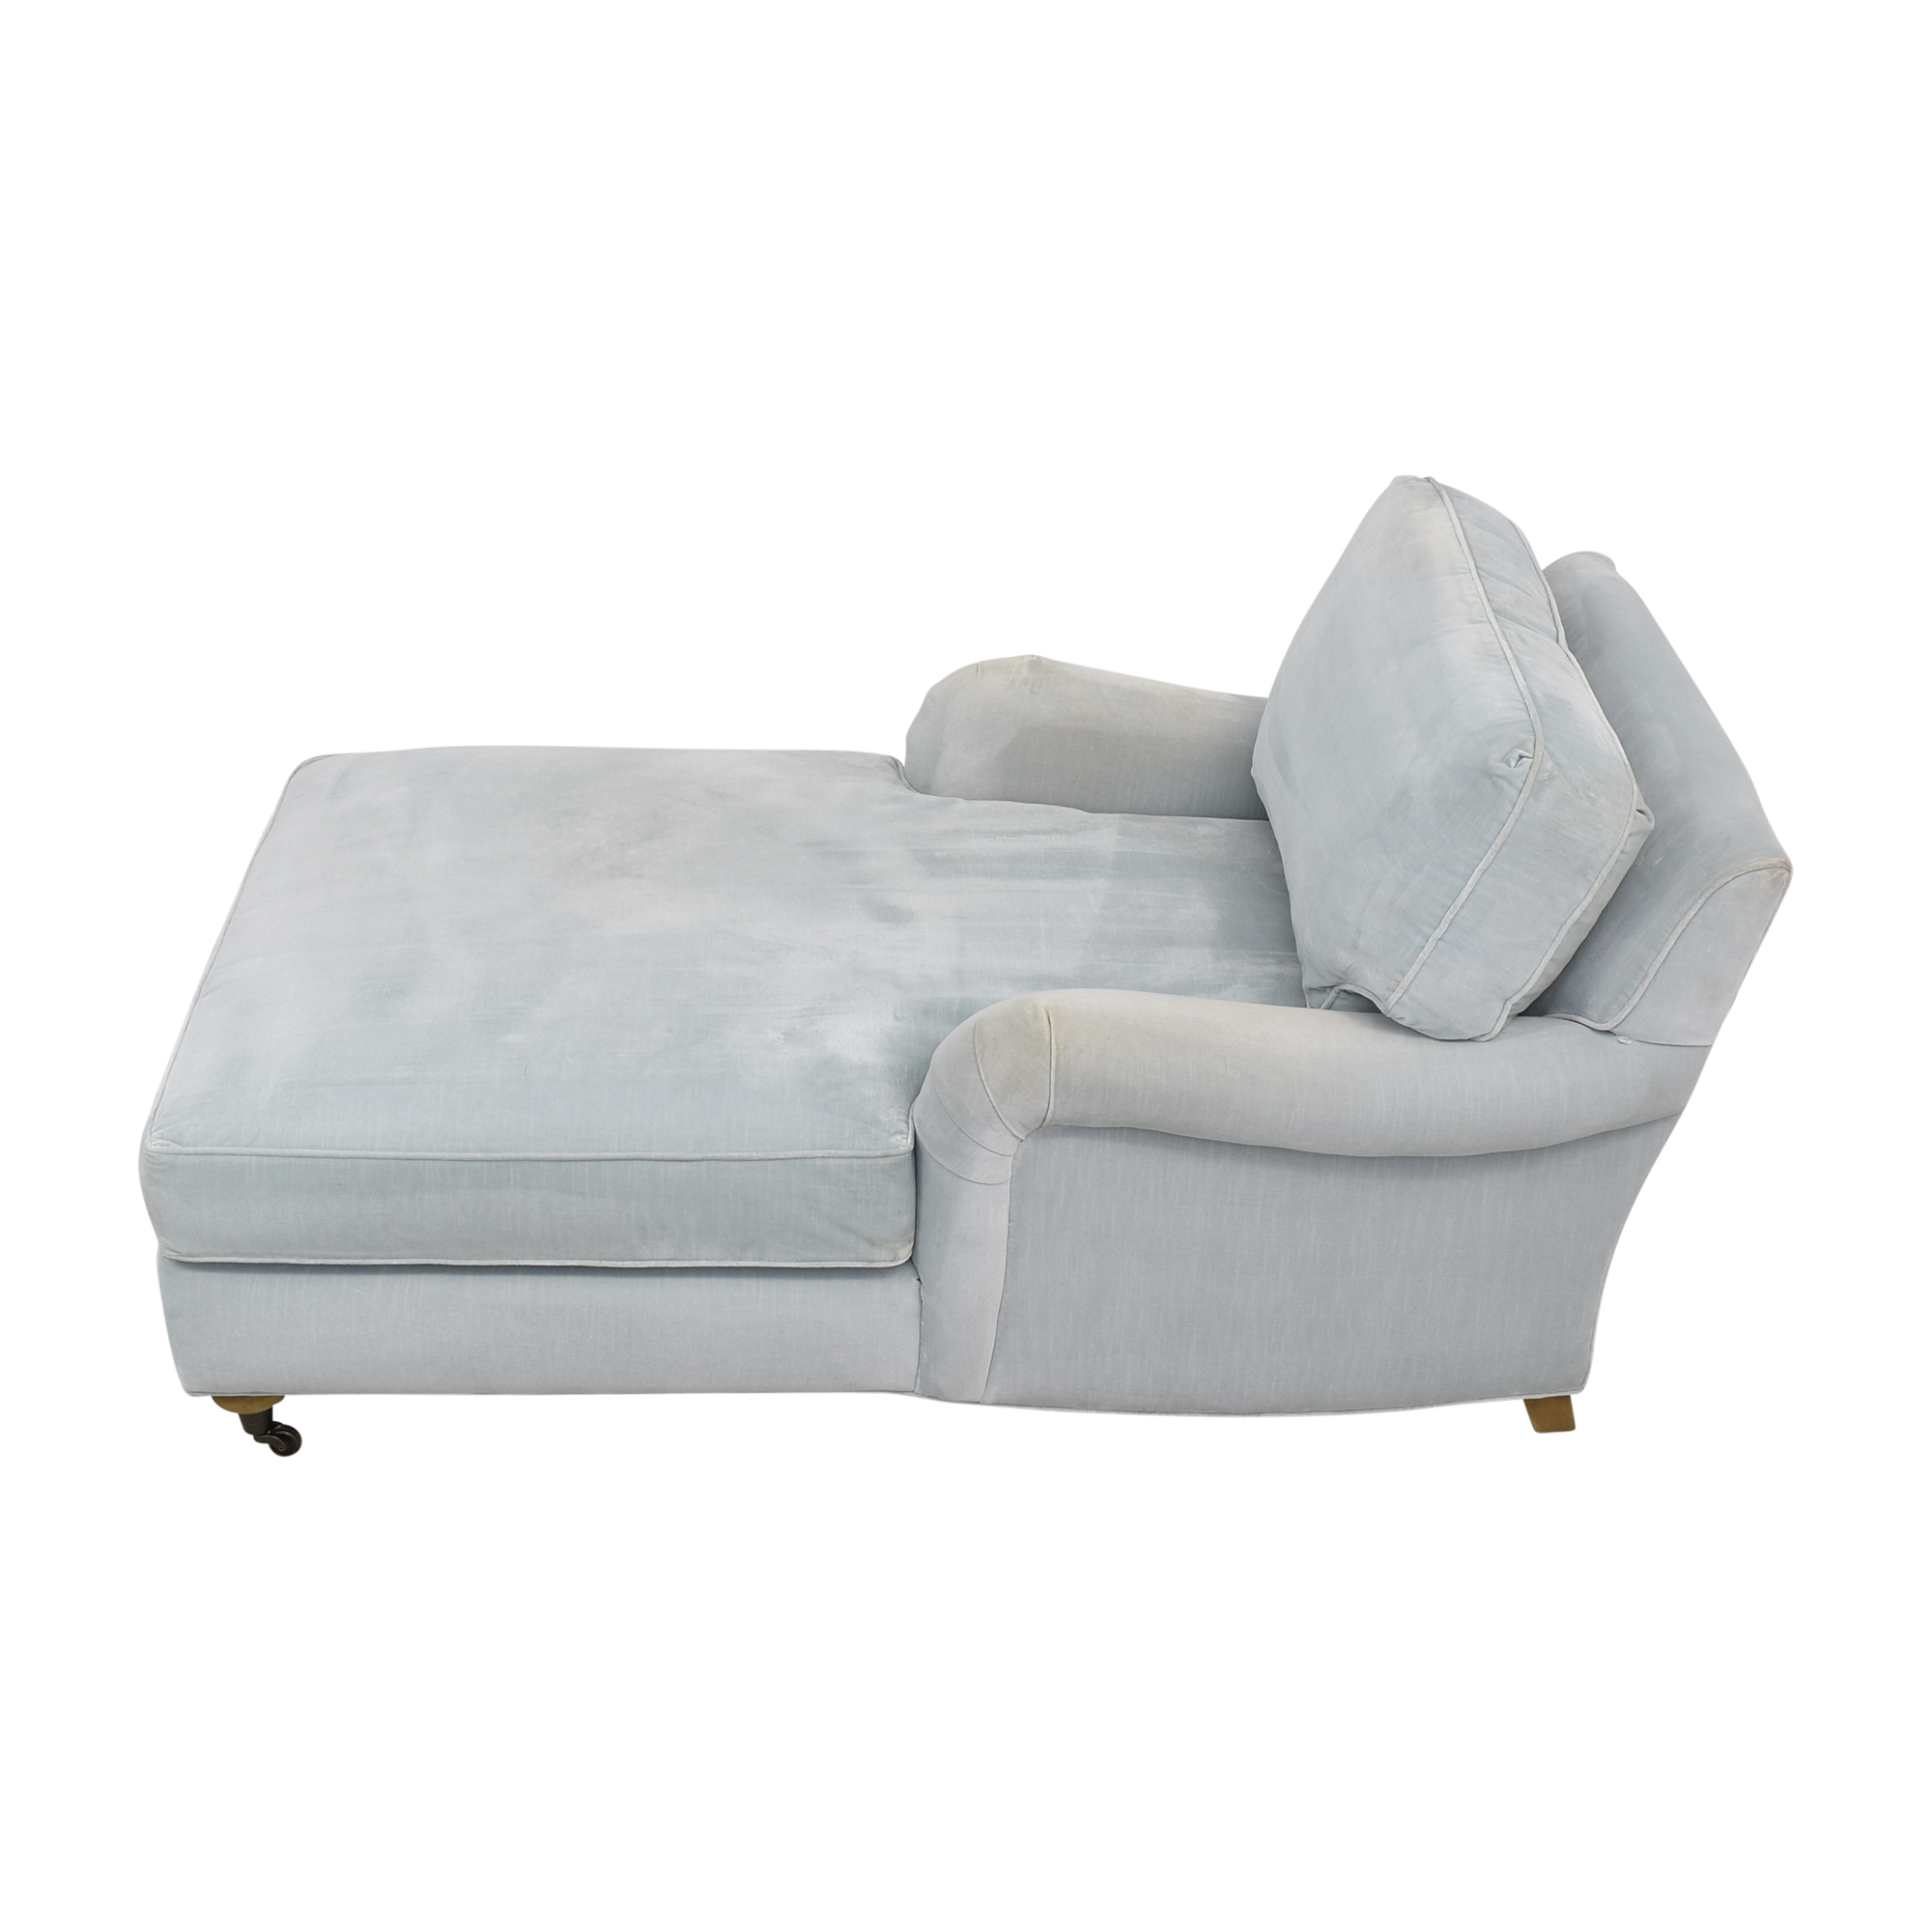 Restoration Hardware Restoration Hardware English Roll Arm Chaise dimensions